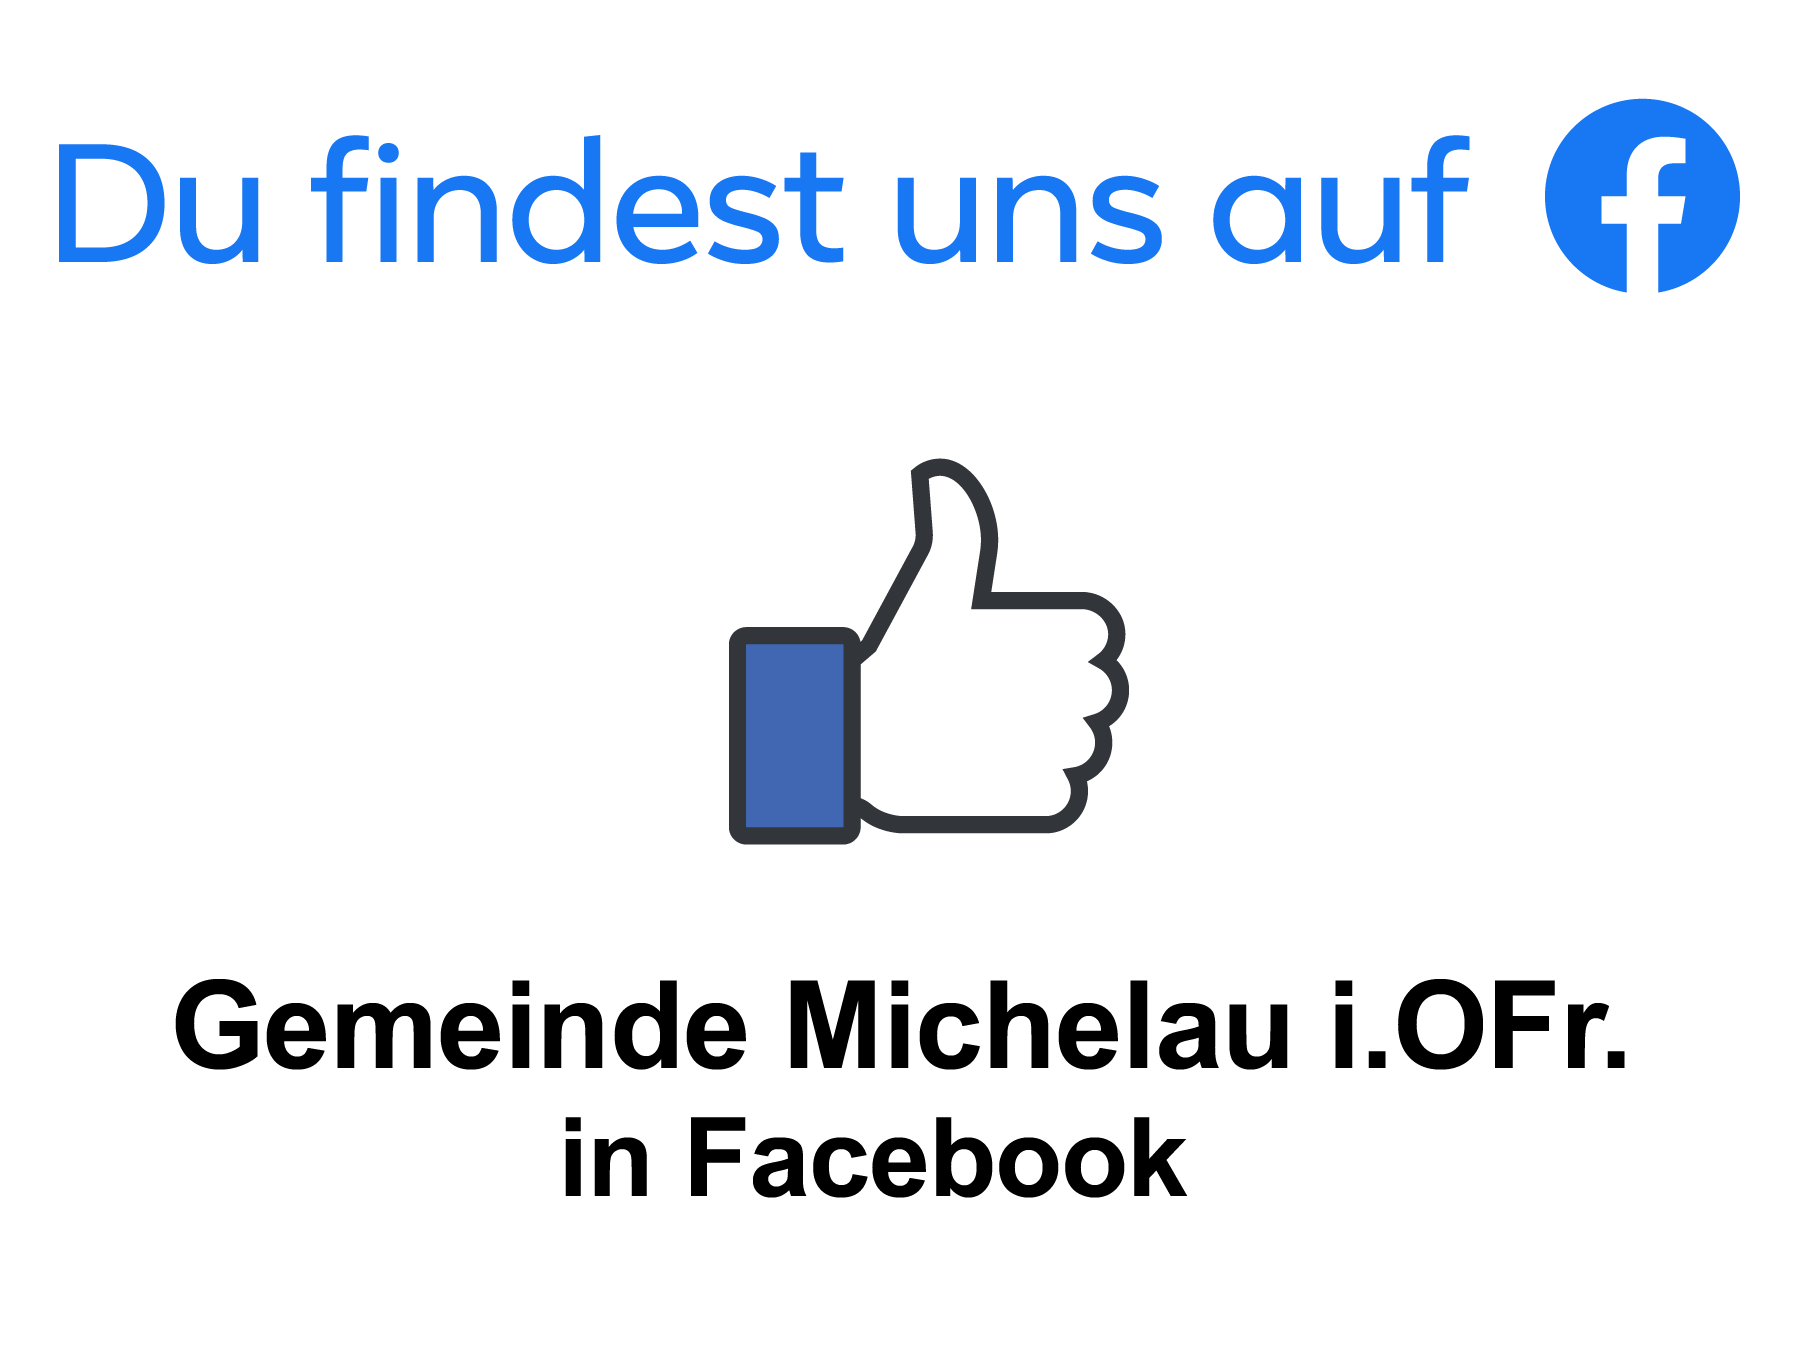 Gemeinde Michelau in Facebook (2019)